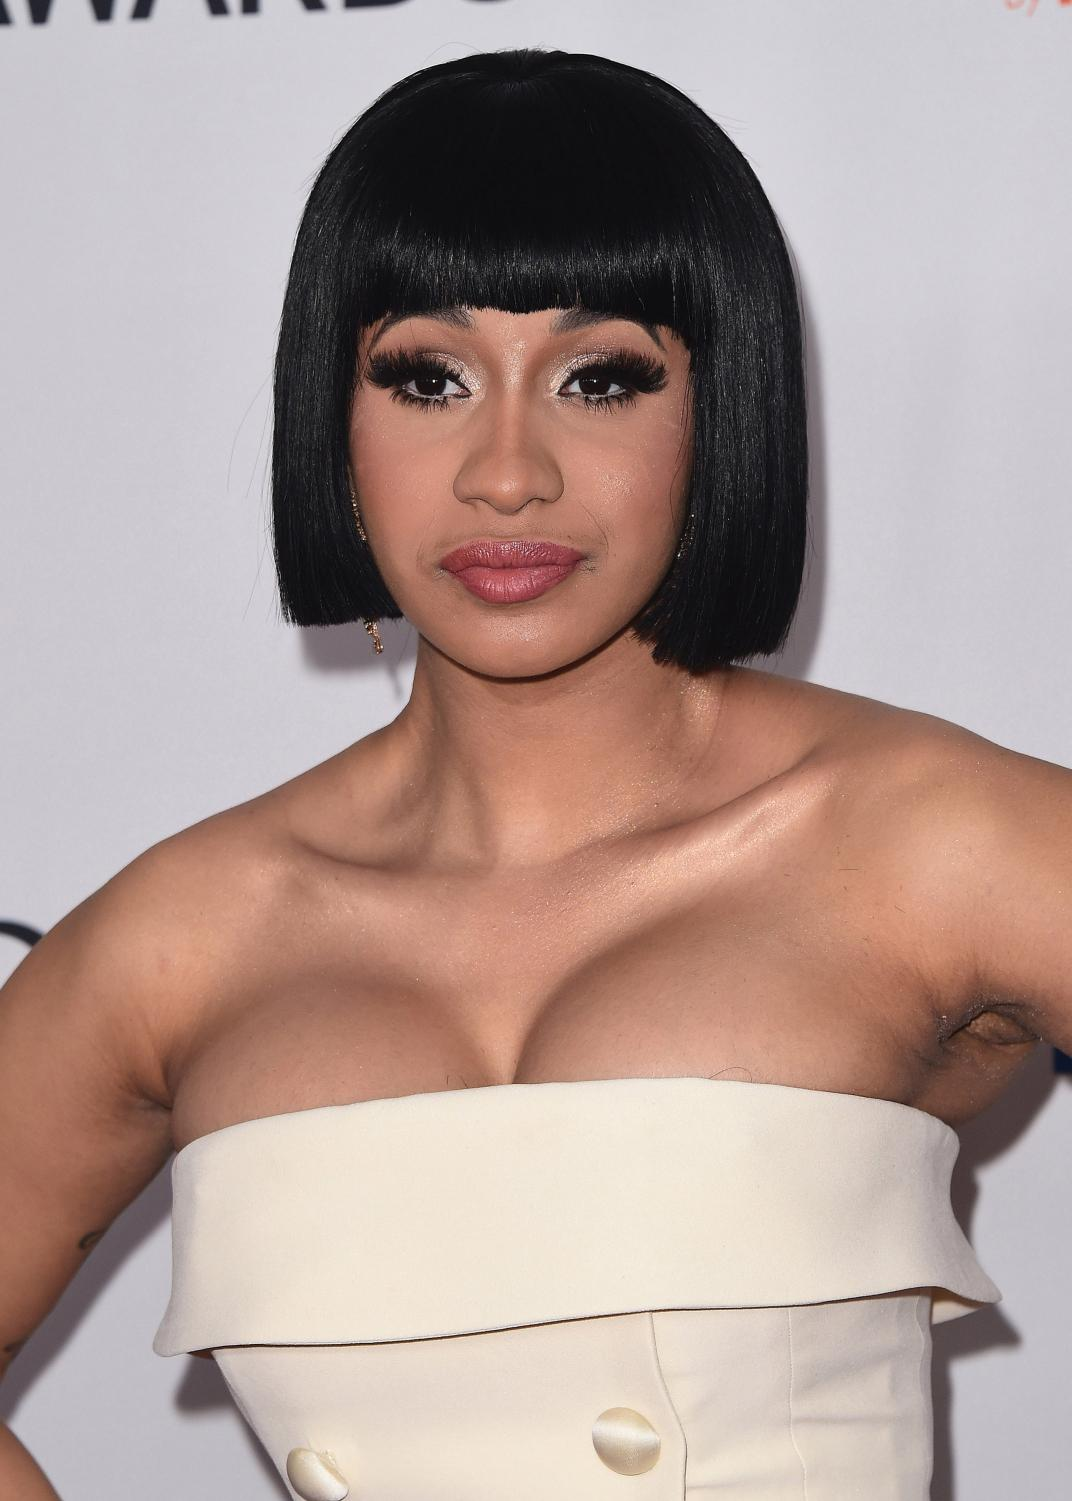 Cardi B at the 2018 Clive Davis Pre-Grammy Gala on January 27, 2018 at the Sheraton New York Times Square in New York, N.Y.